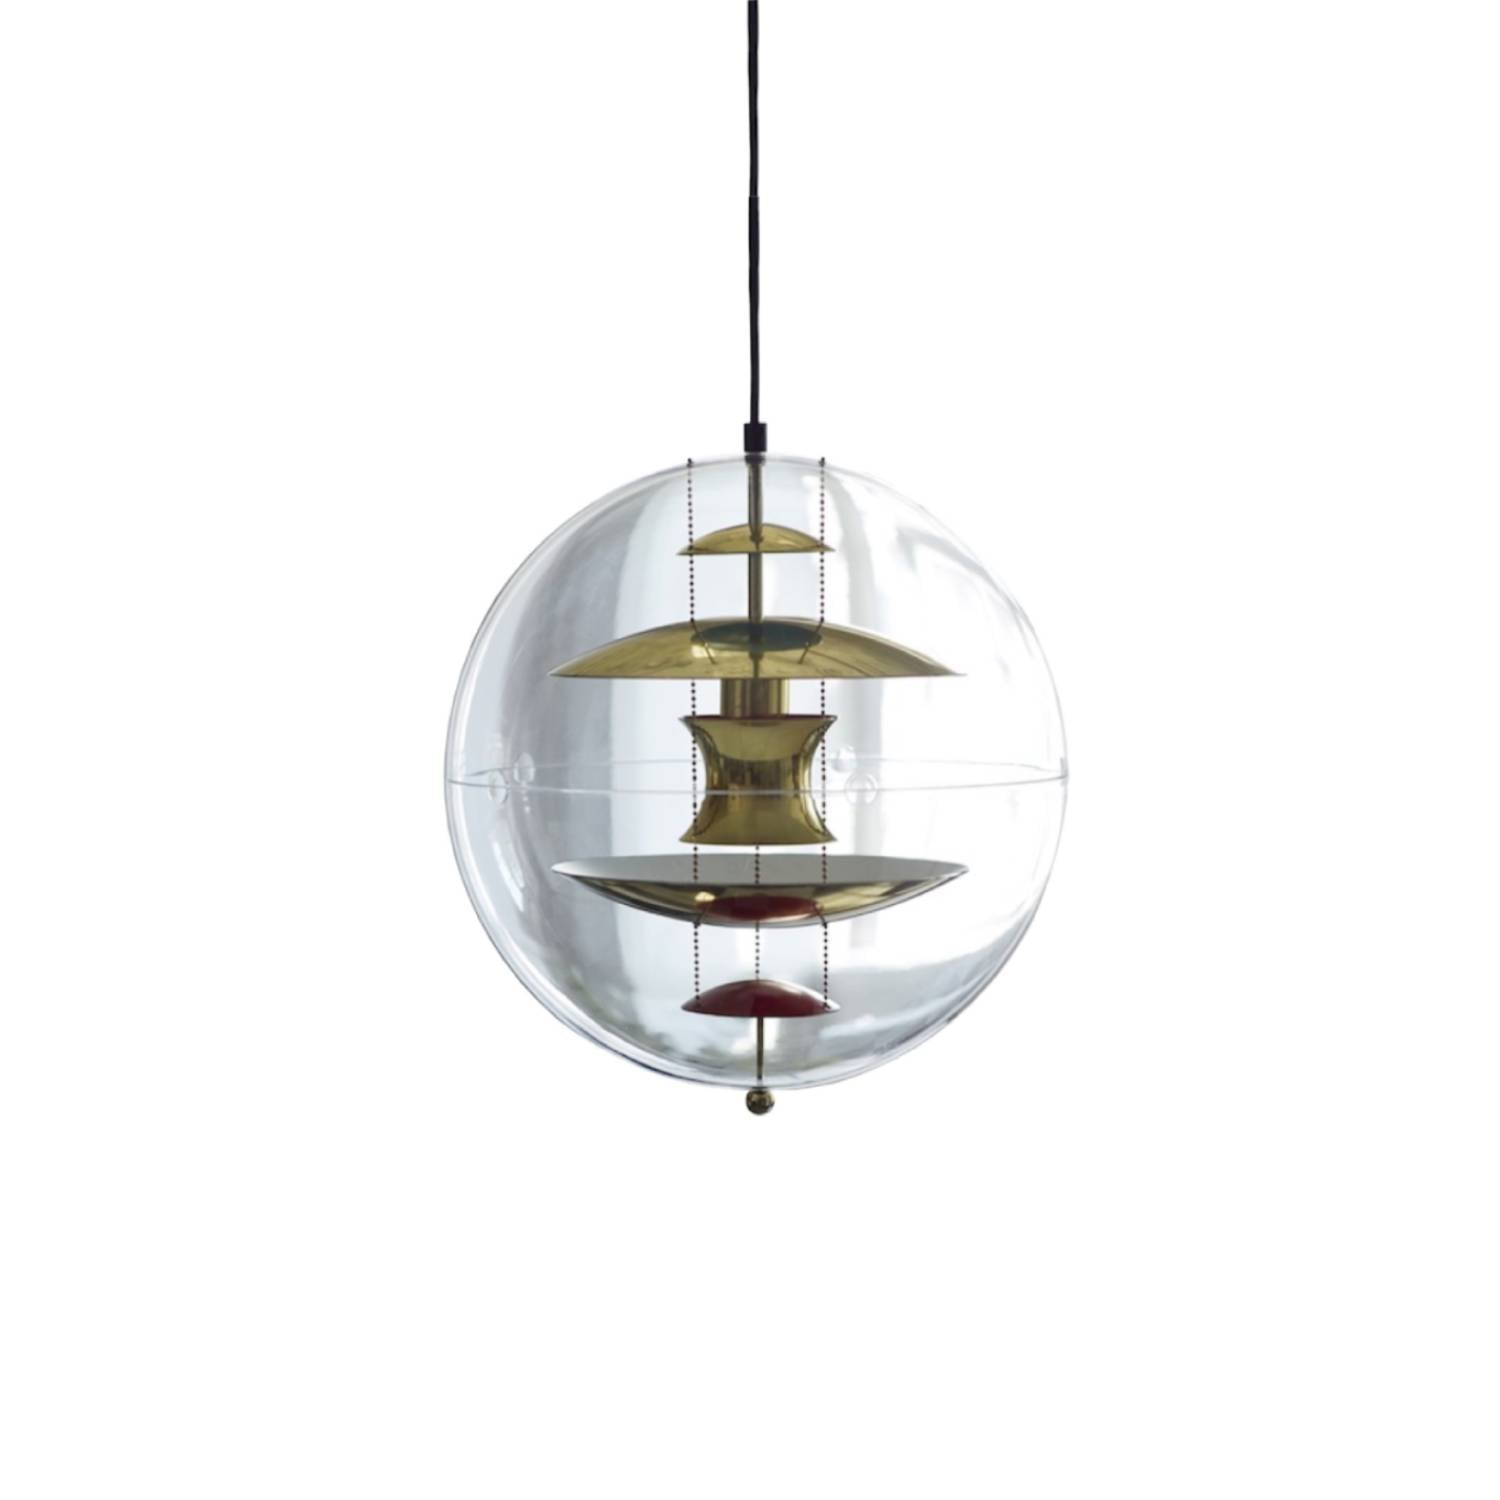 VP Globe Pendant Light